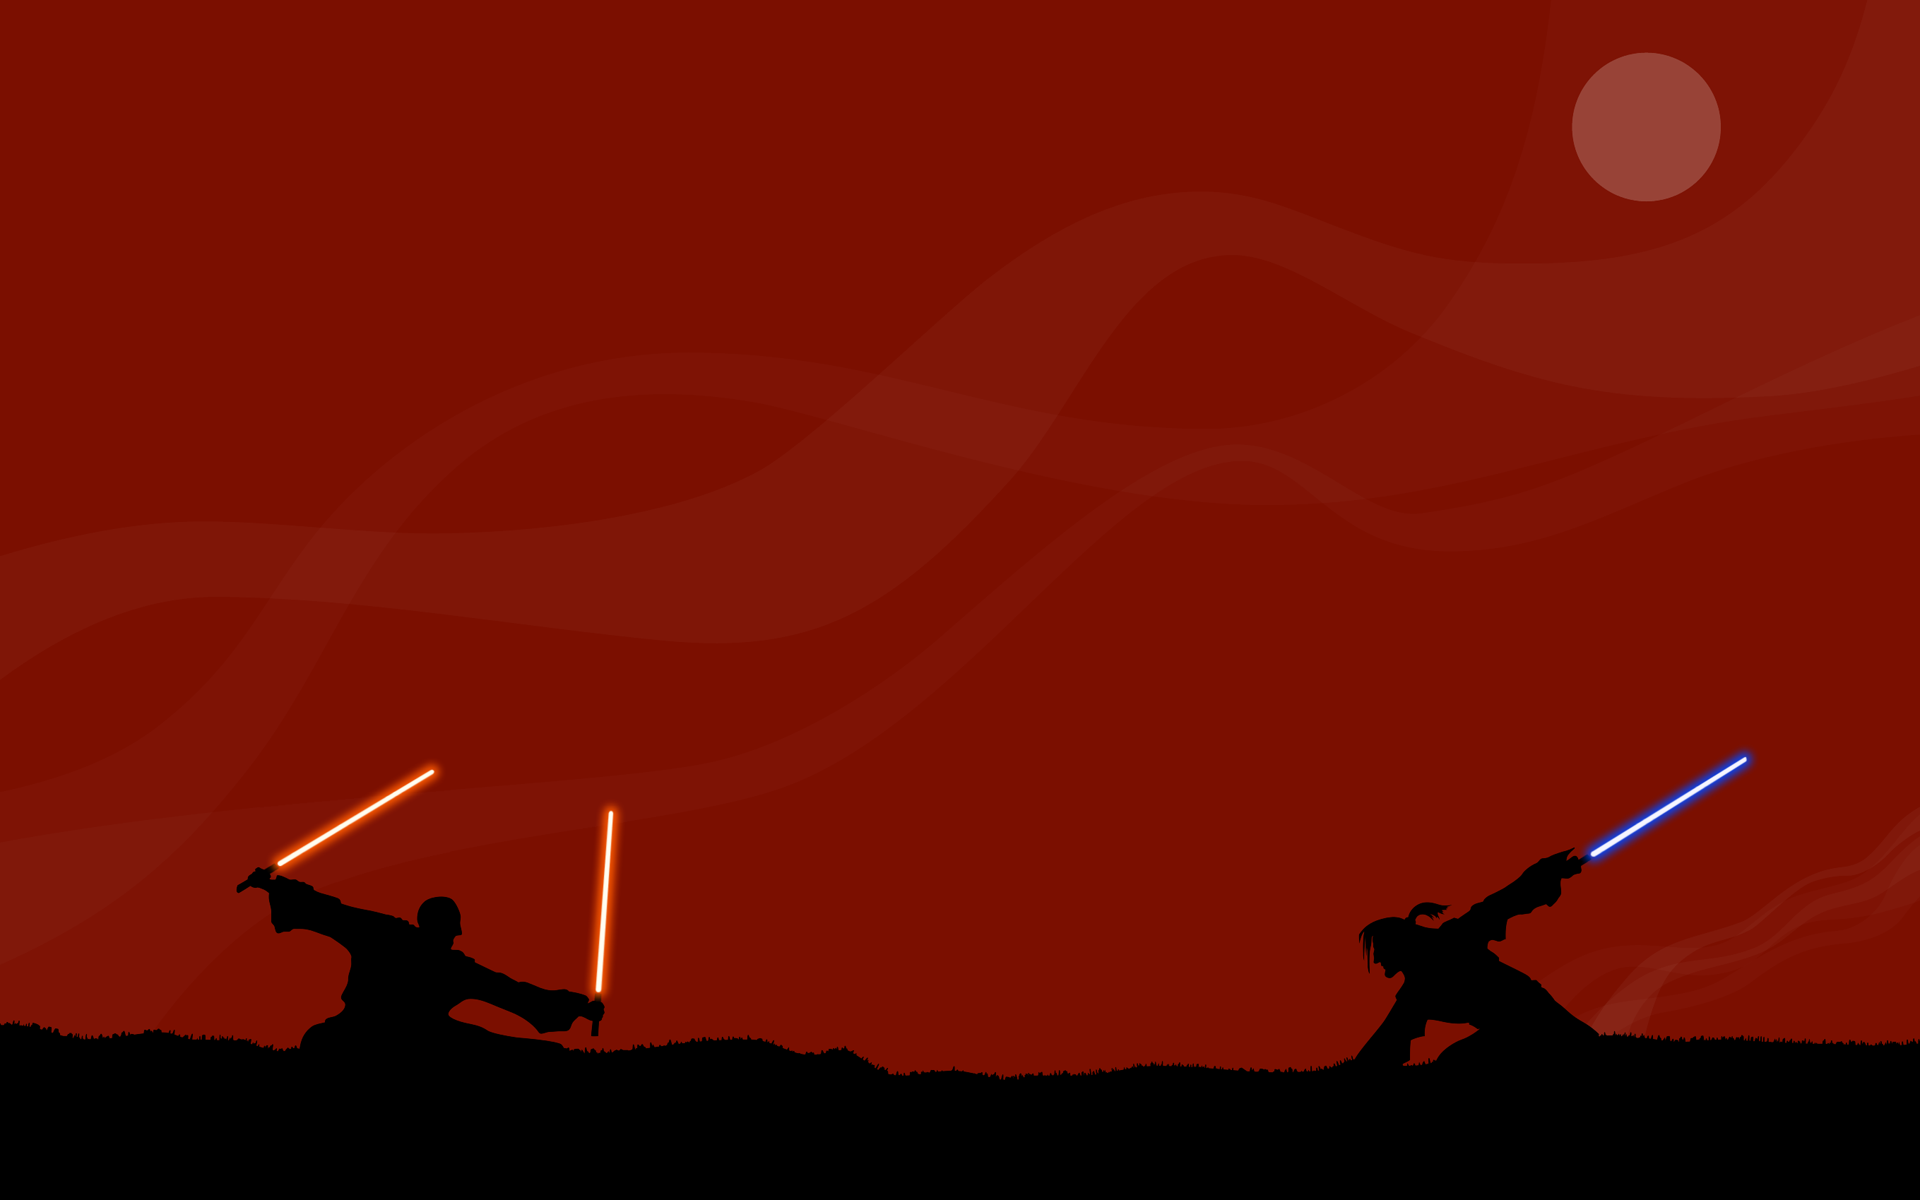 Jedi Vs Sith Image Star Wars Wallpaper 1017873 Png Images Pngio